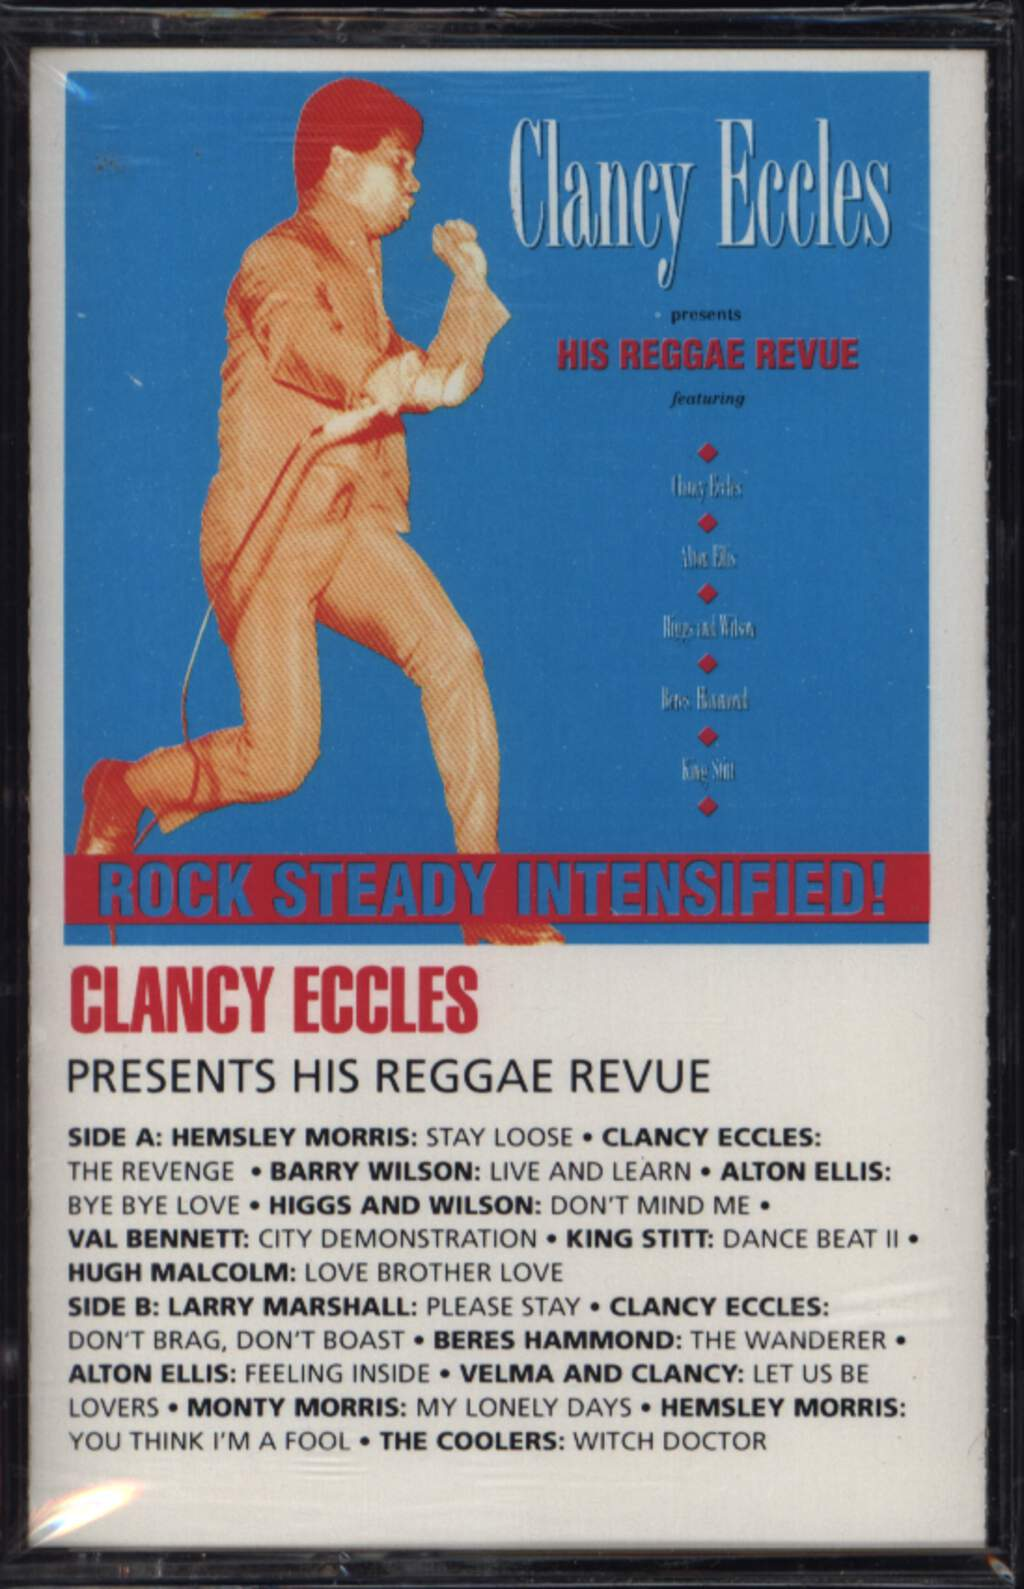 Various: Clancy Eccles Presents His Reggae Revue, Compact Cassette